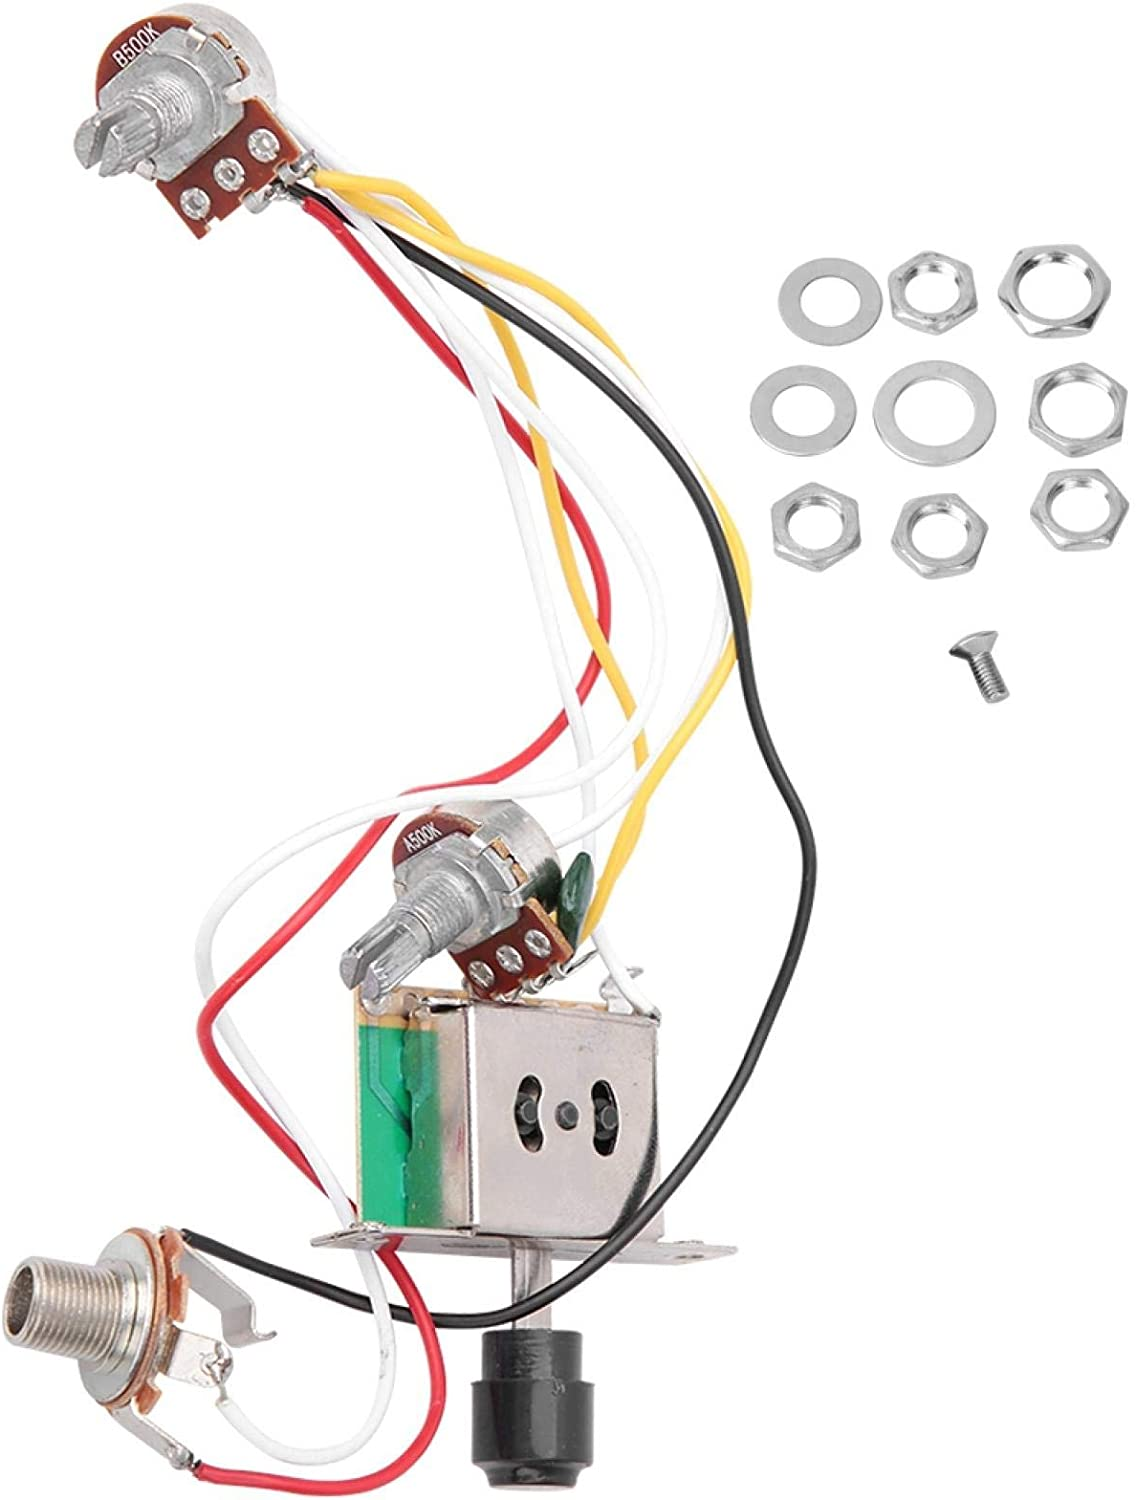 Snufeve Prewired Wiring Harness Excellent Detroit Mall 1T1V Potentiometer Harne